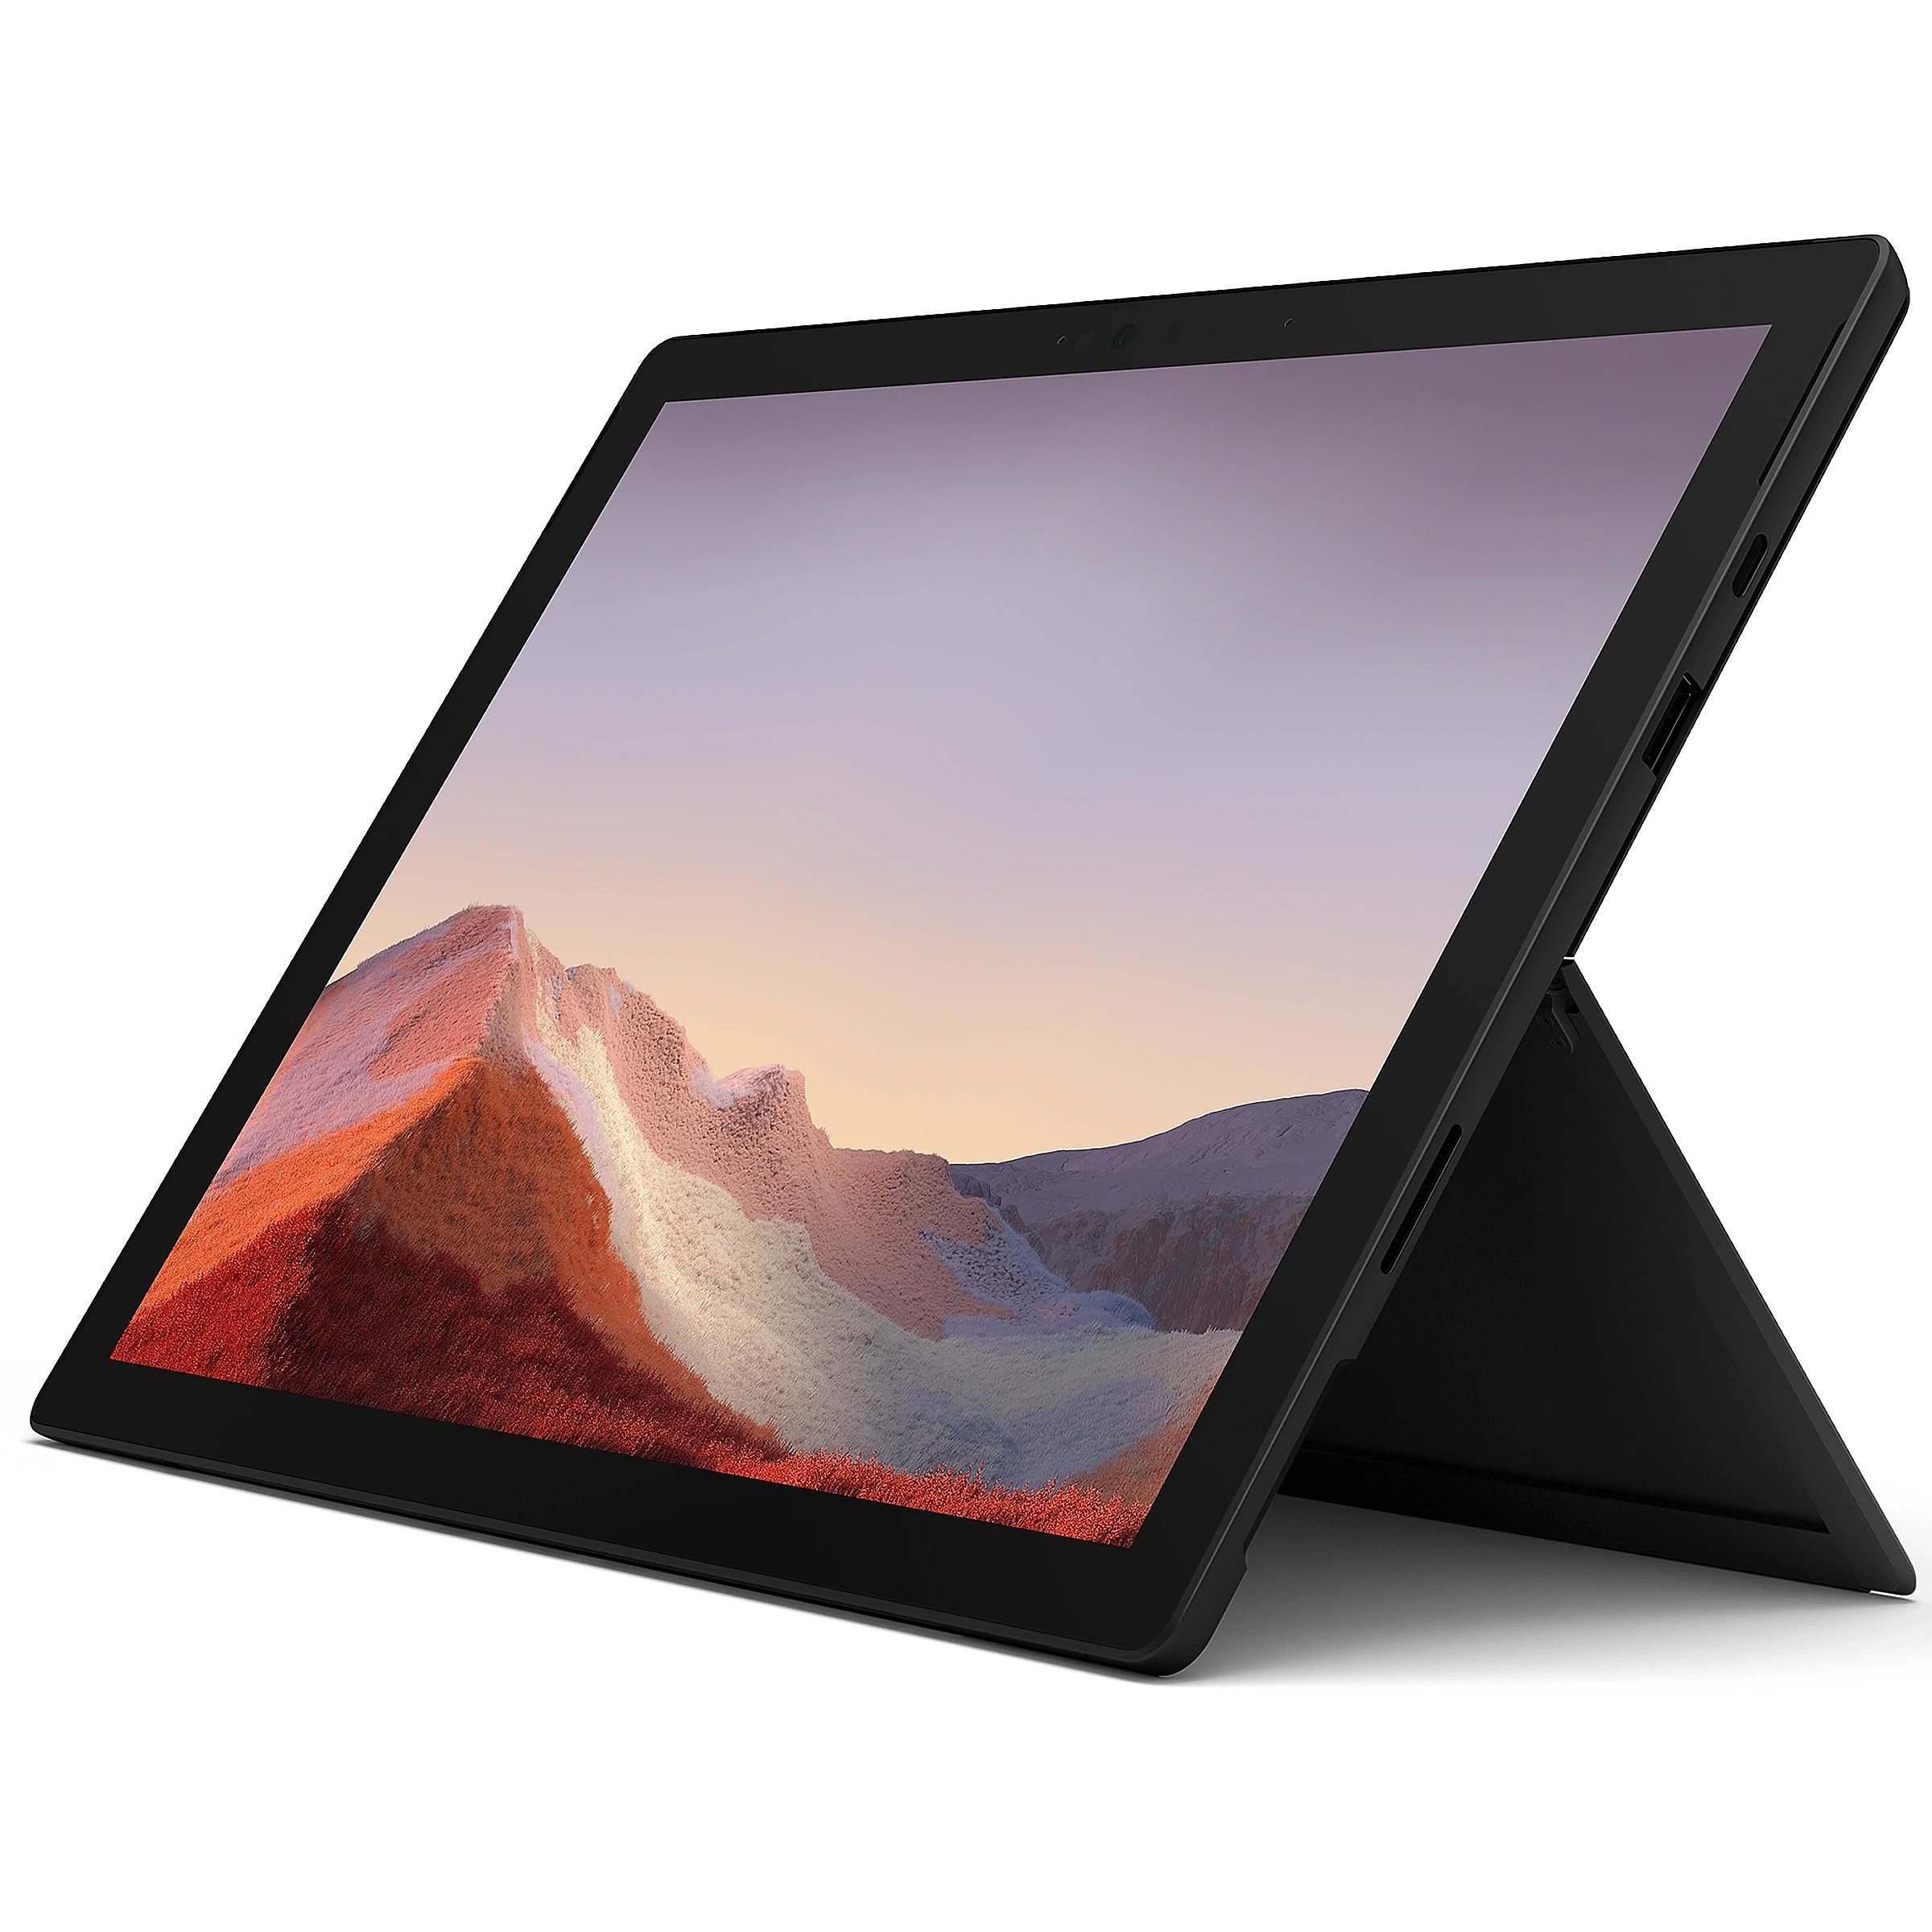 Microsoft Surface Pro 7 Black, 12.3